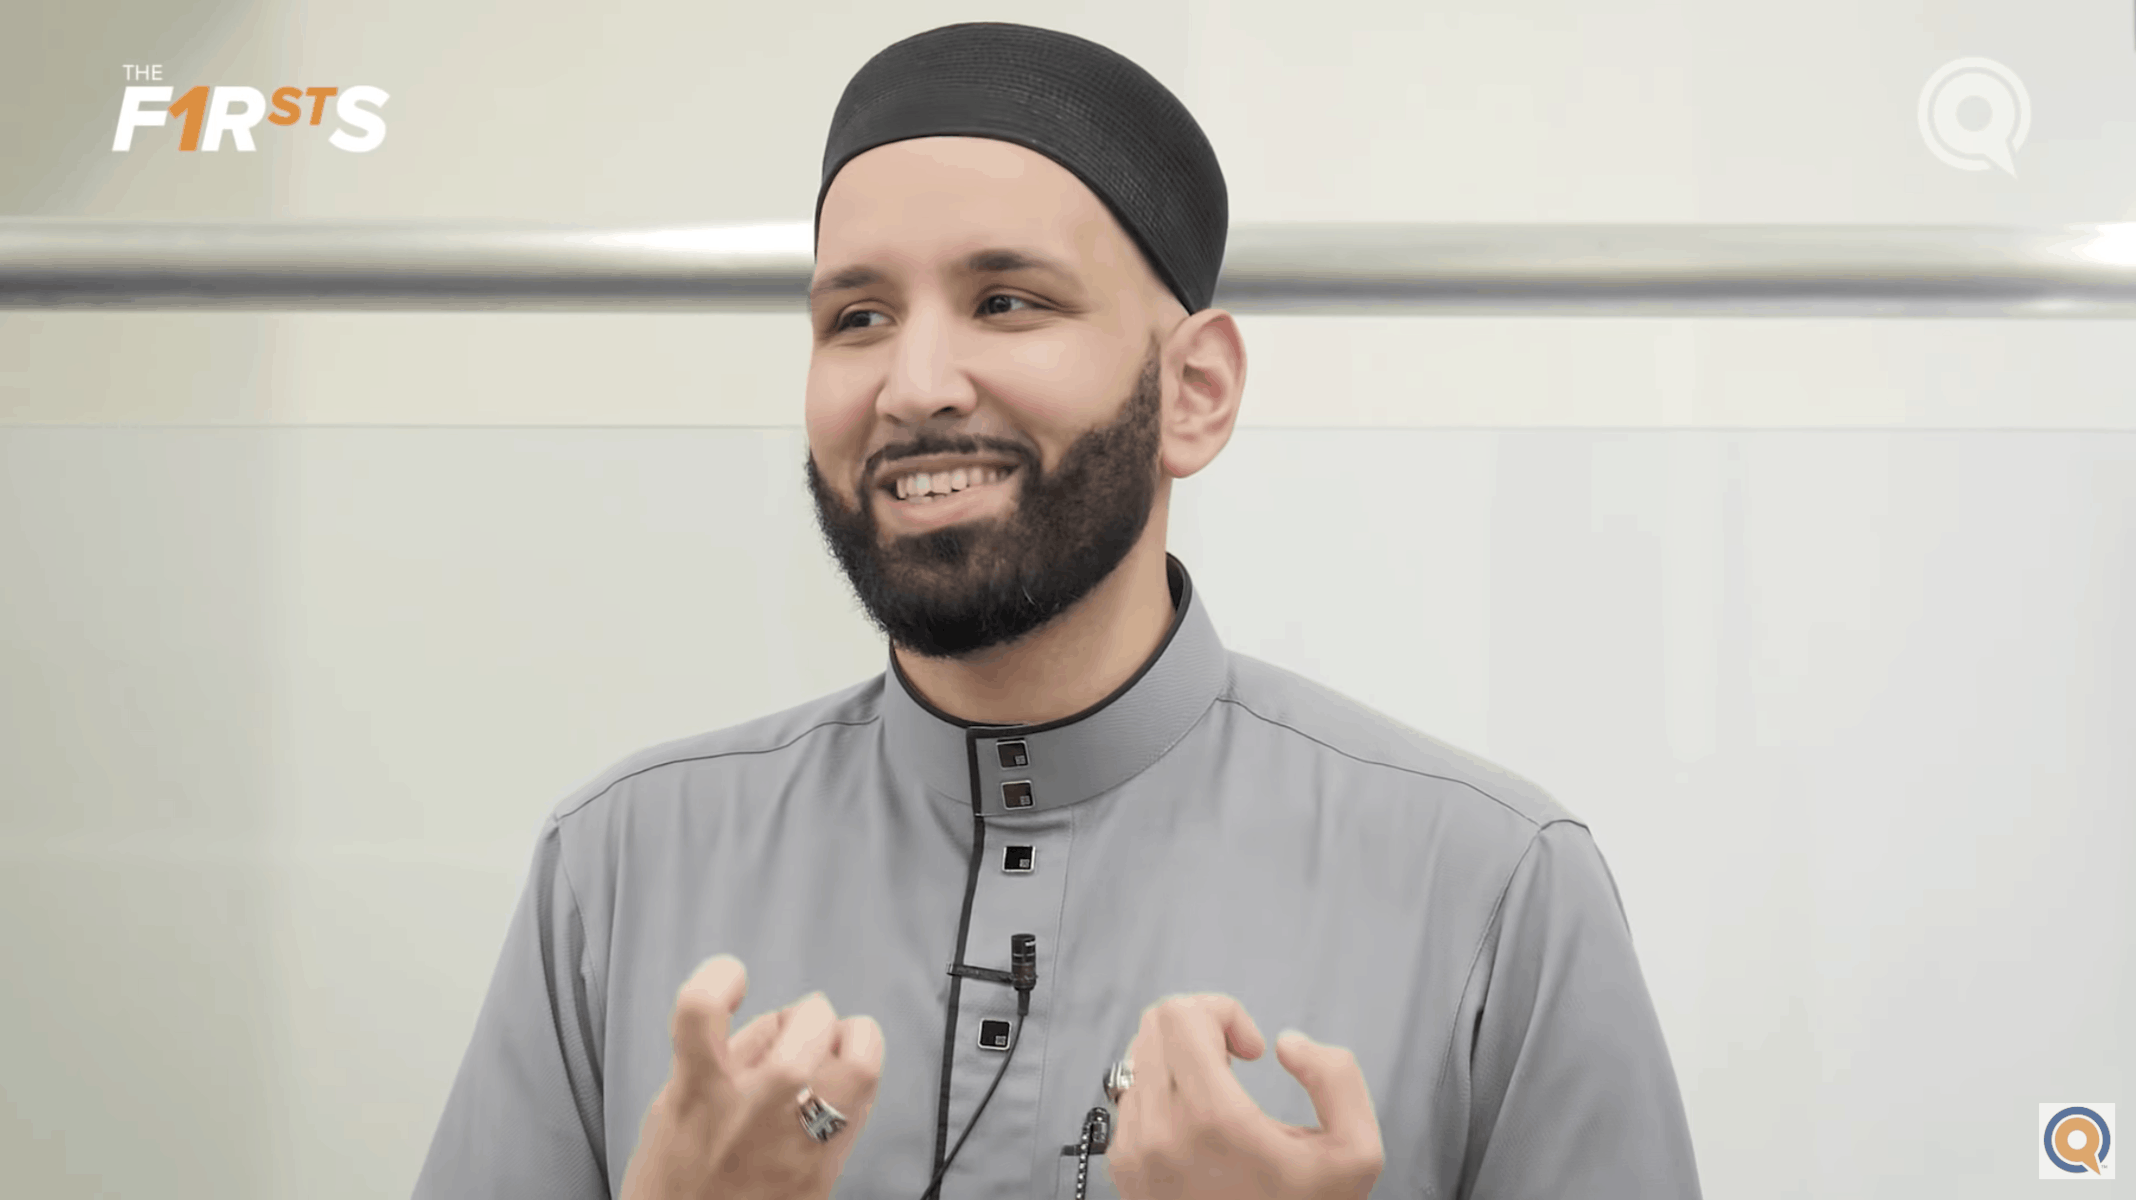 Omar Suleiman – The Firsts (Episode 8): Ali and Fatima: From Love to the Pain of Death